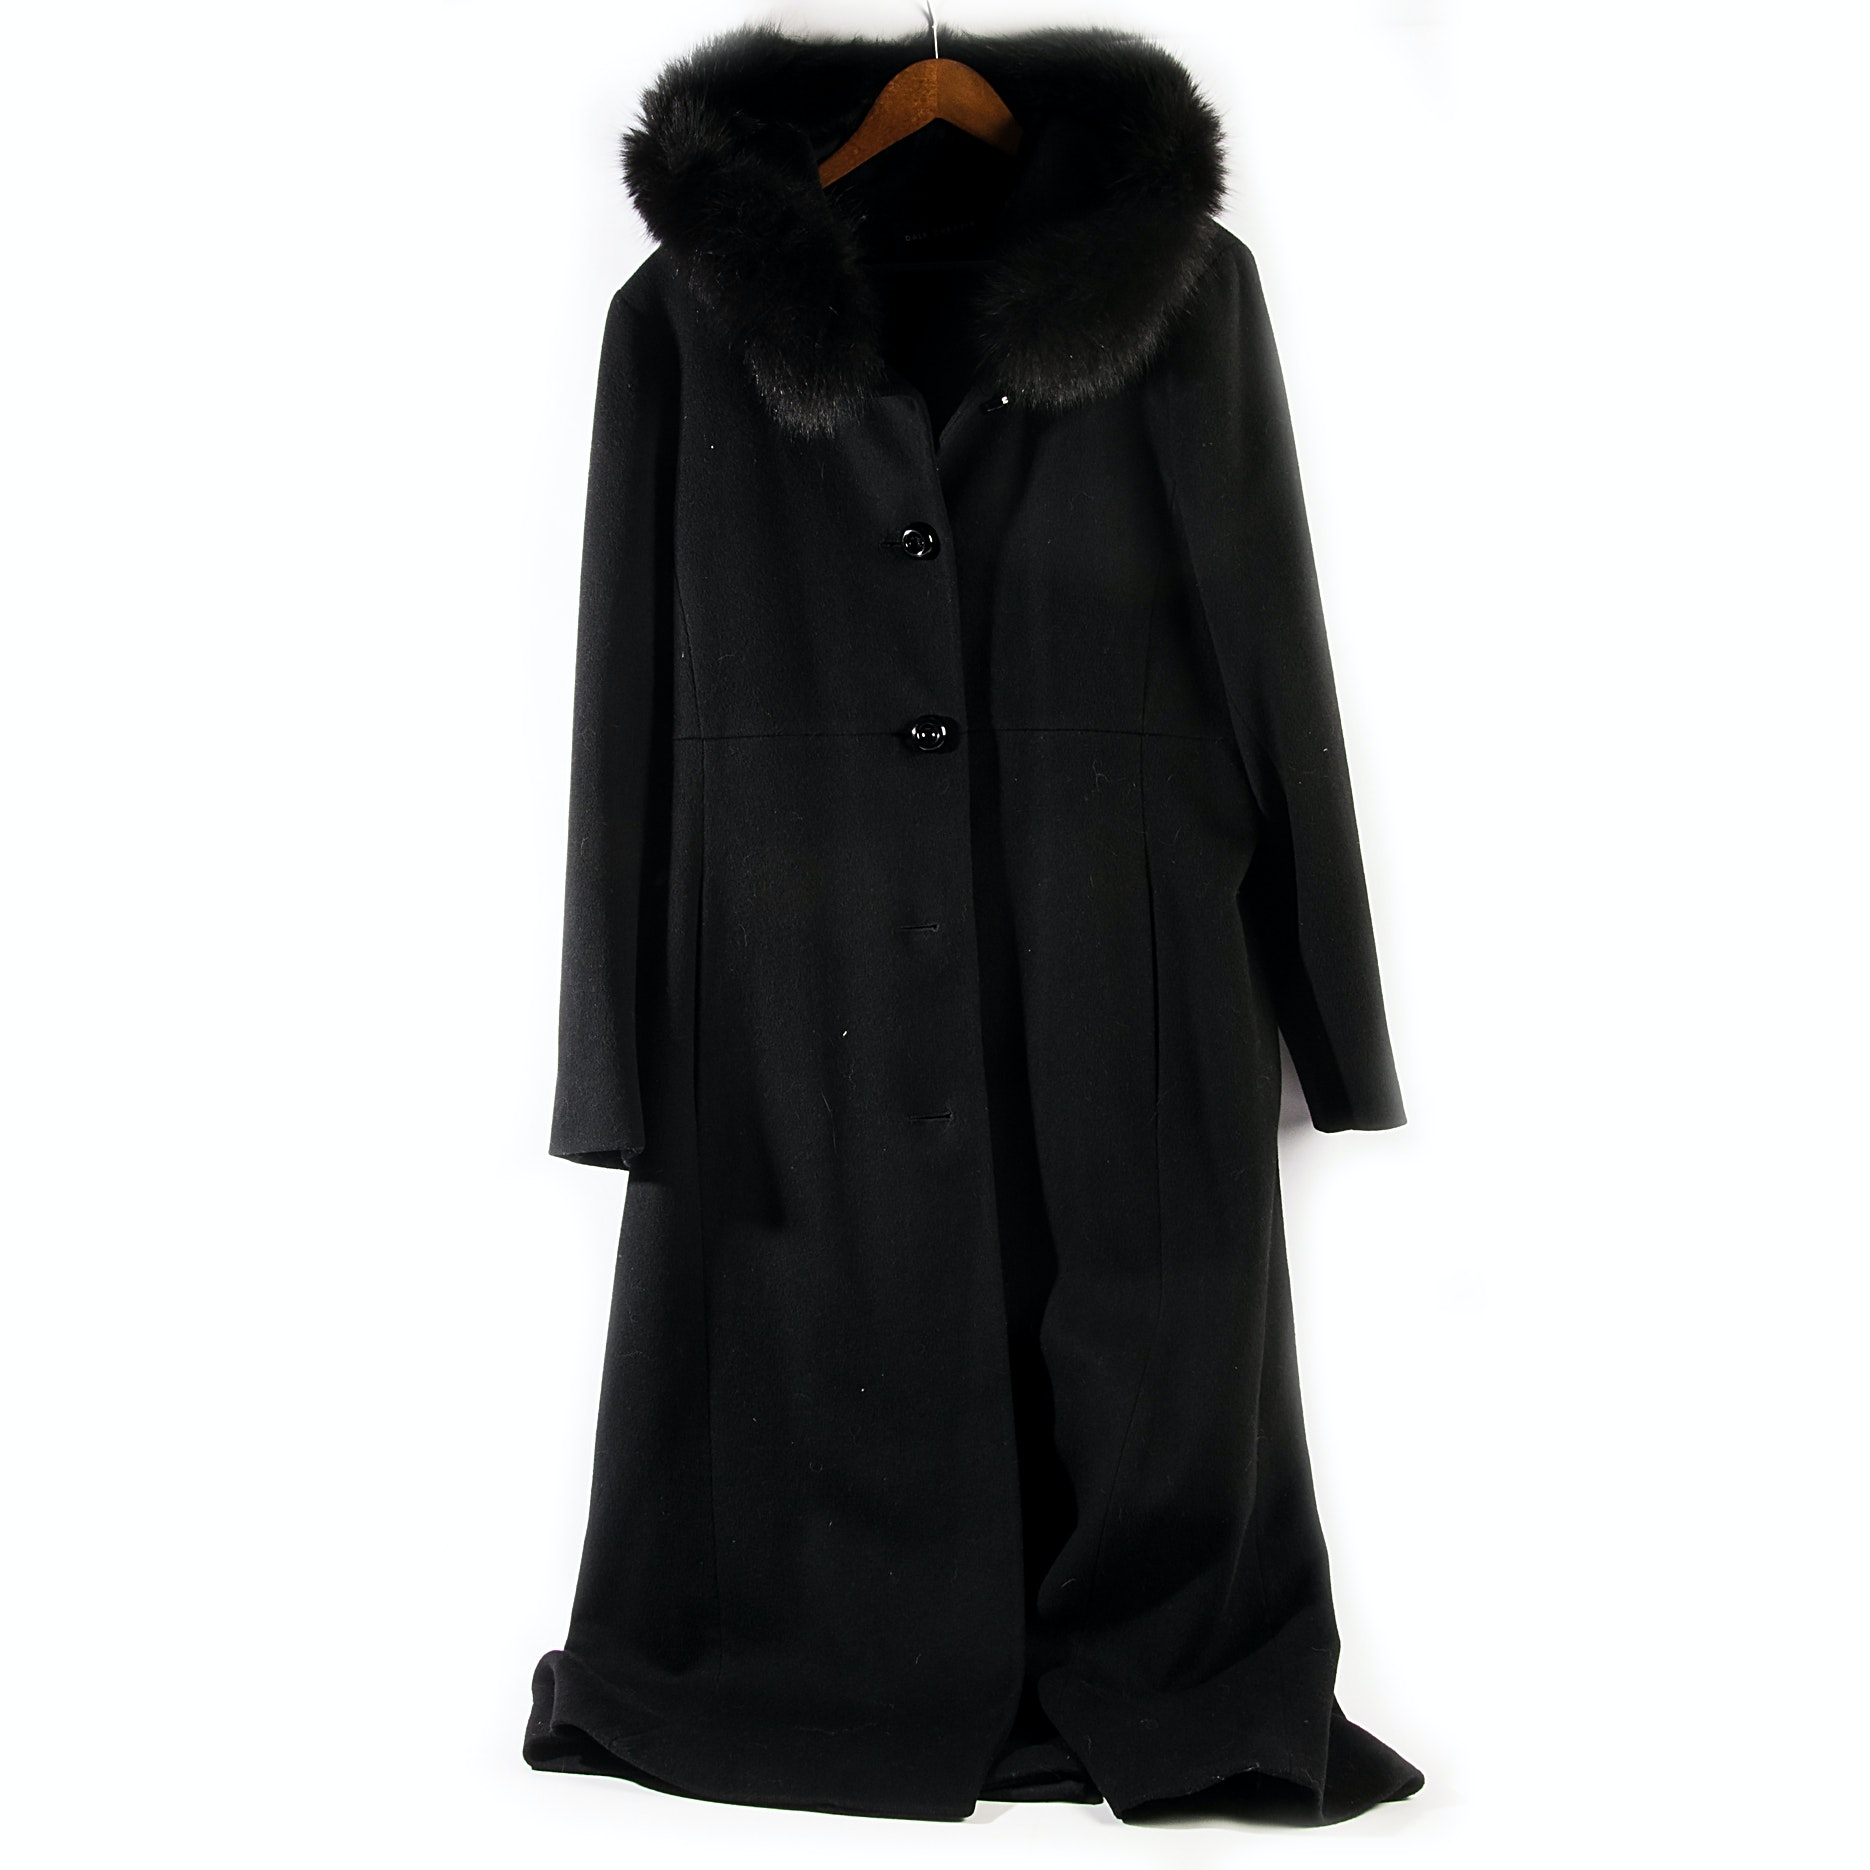 Dale Dressin Floor Length Wool Coat with Dyed Blue Fox Fur Hood